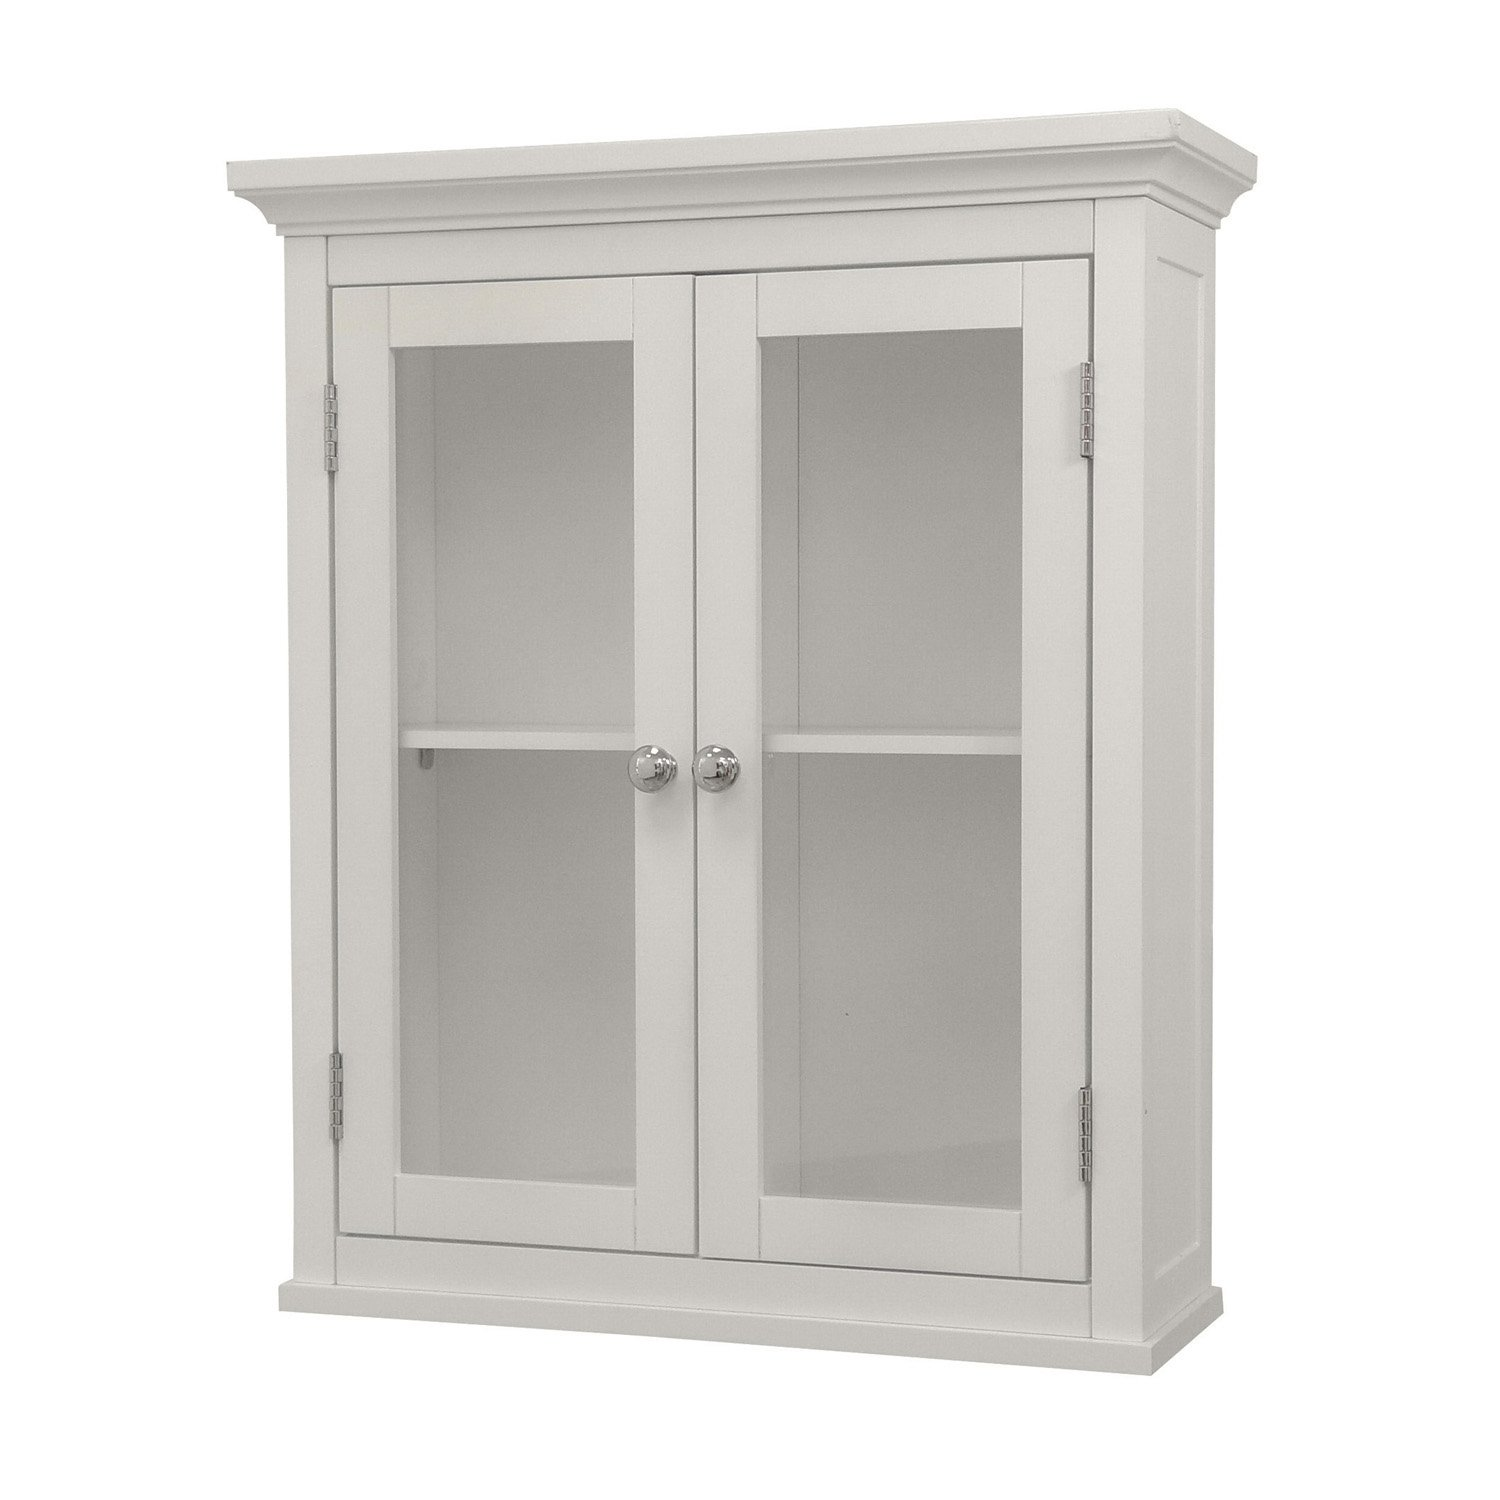 Elegant Home Fashions Madison Collection Shelved Wall Cabinet with Glass-Paneled Doors, White by Elegant Home Fashions